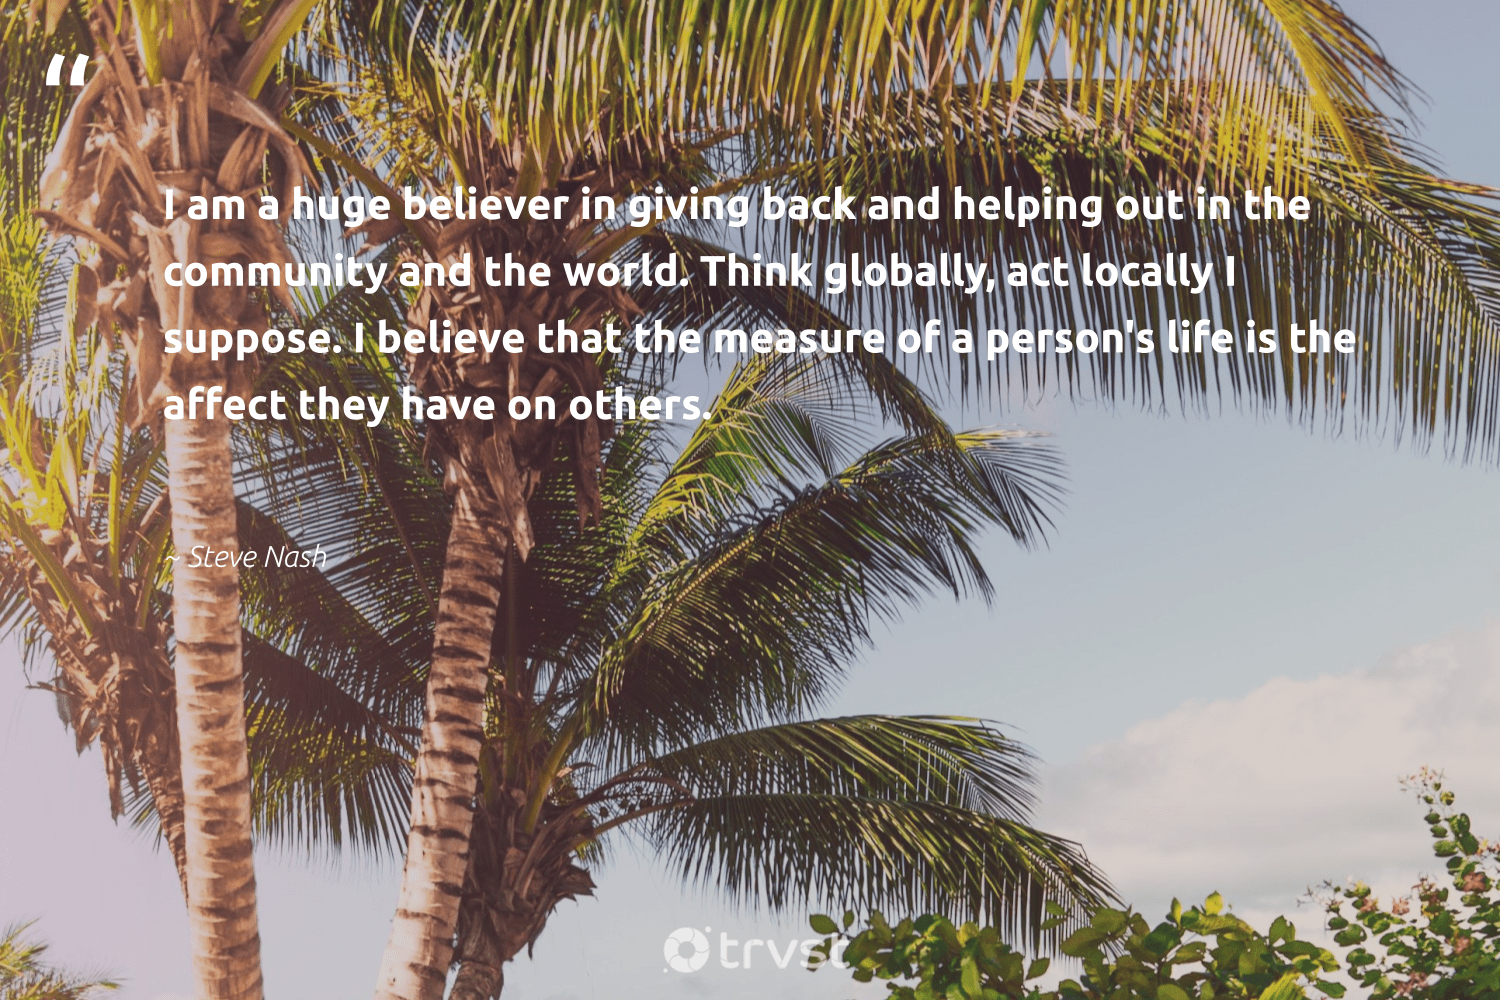 """""""I am a huge believer in giving back and helping out in the community and the world. Think globally, act locally I suppose. I believe that the measure of a person's life is the affect they have on others.""""  - Steve Nash #trvst #quotes #givingback #dogood #giveback #giveforthefuture #changemakers #impact #socialgood #togetherwecan #itscooltobekind #gogreen"""